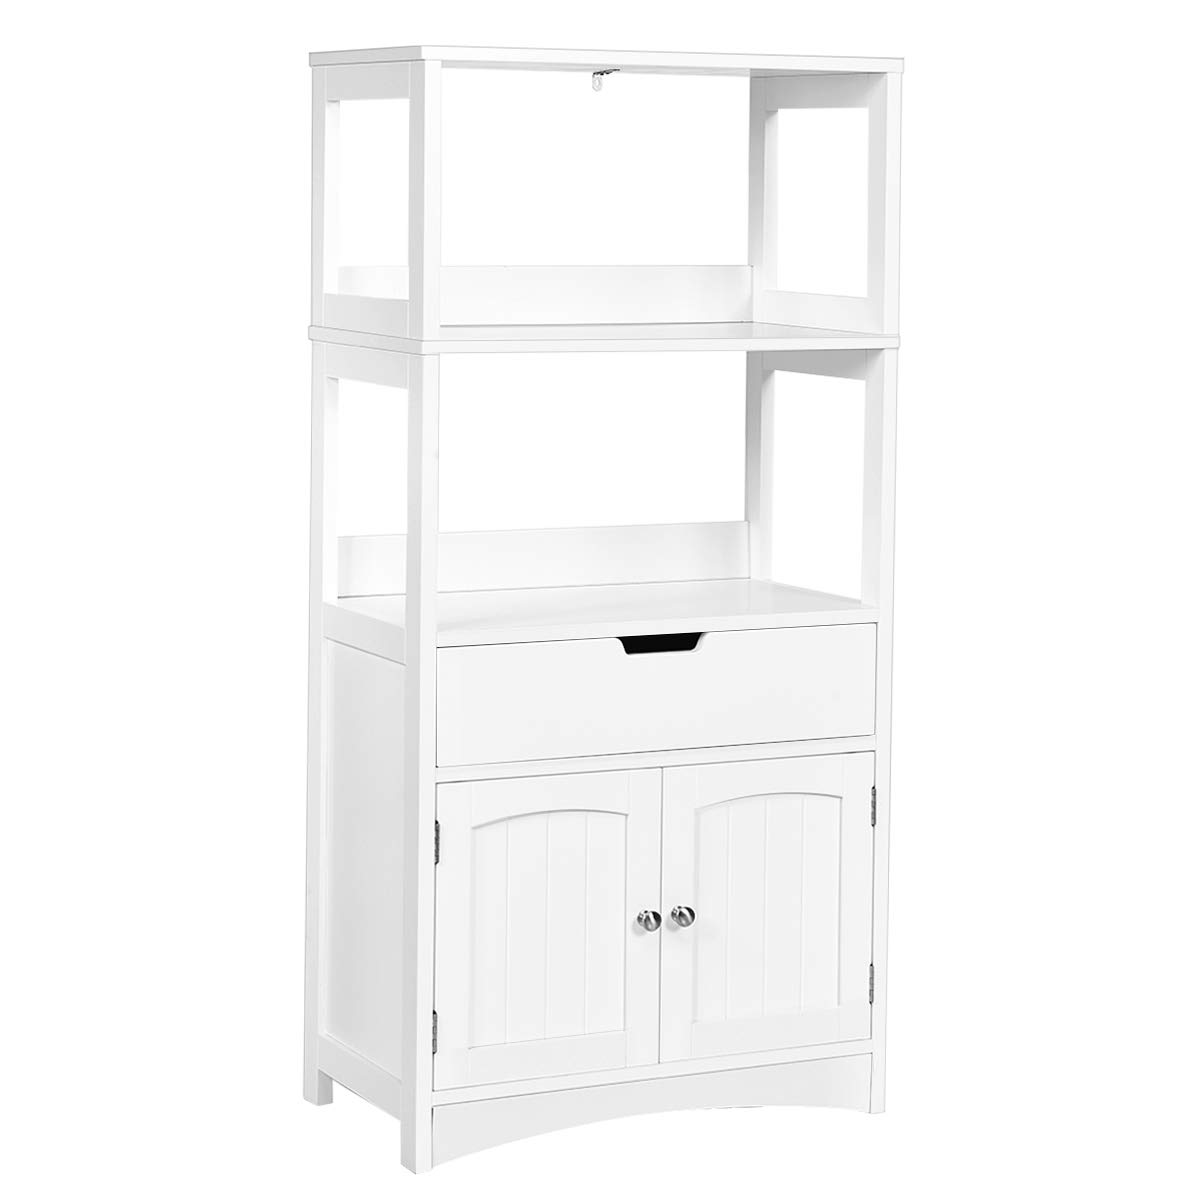 Tangkula Bathroom Storage Cabinet with Drawer and Shelf, Floor Cabinet w/2 Open Shelves and Door Cupboard, Storage Cabinet for Kitchen, Hallway, Living Room, Free Standing Wooden Display Cabinet